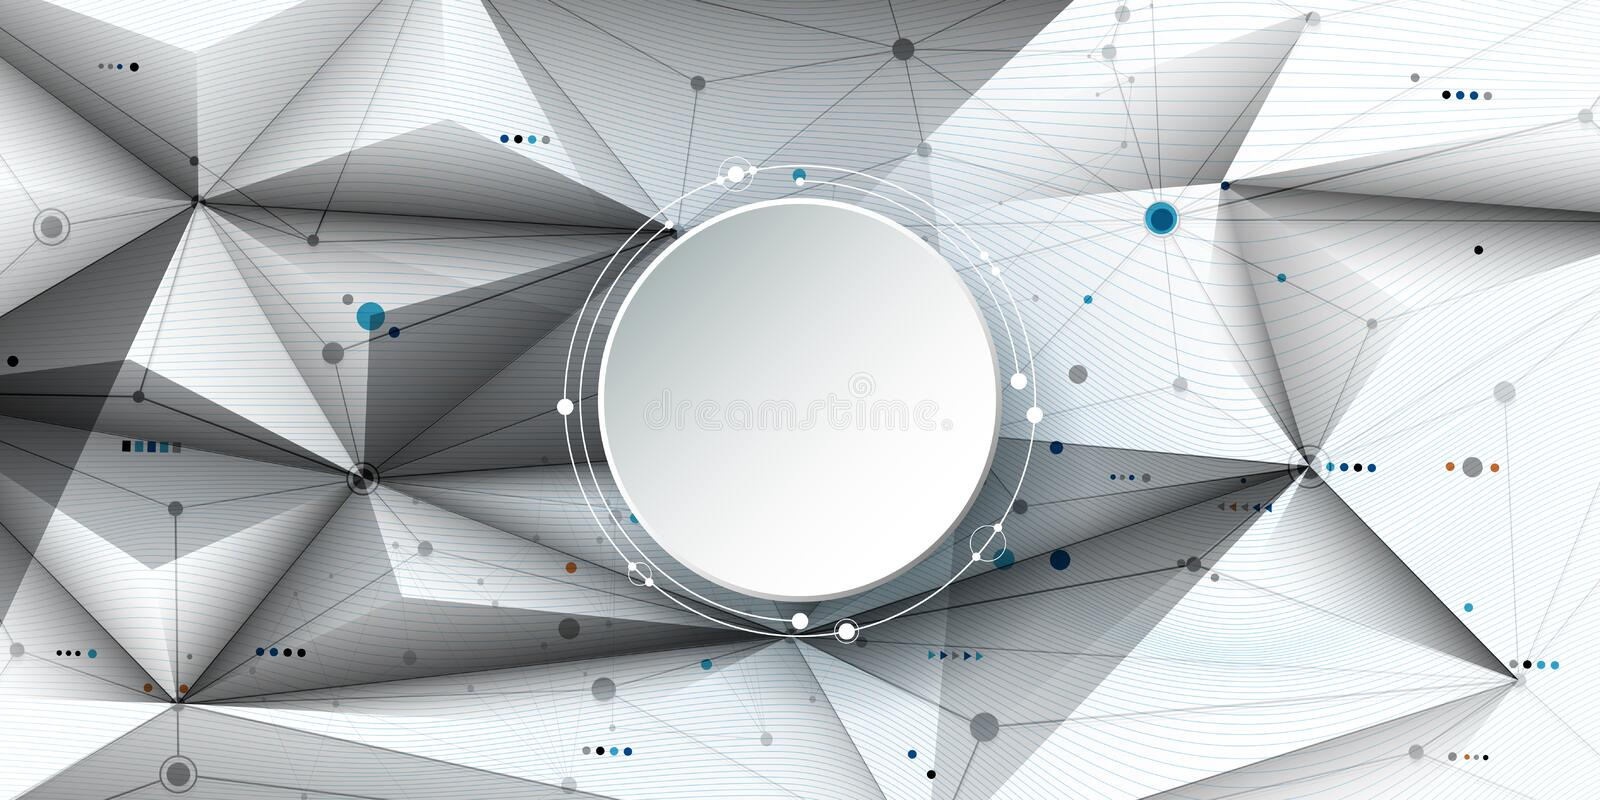 Vector illustration abstract molecules and communication, social media technology concept with 3D paper label circles design royalty free illustration